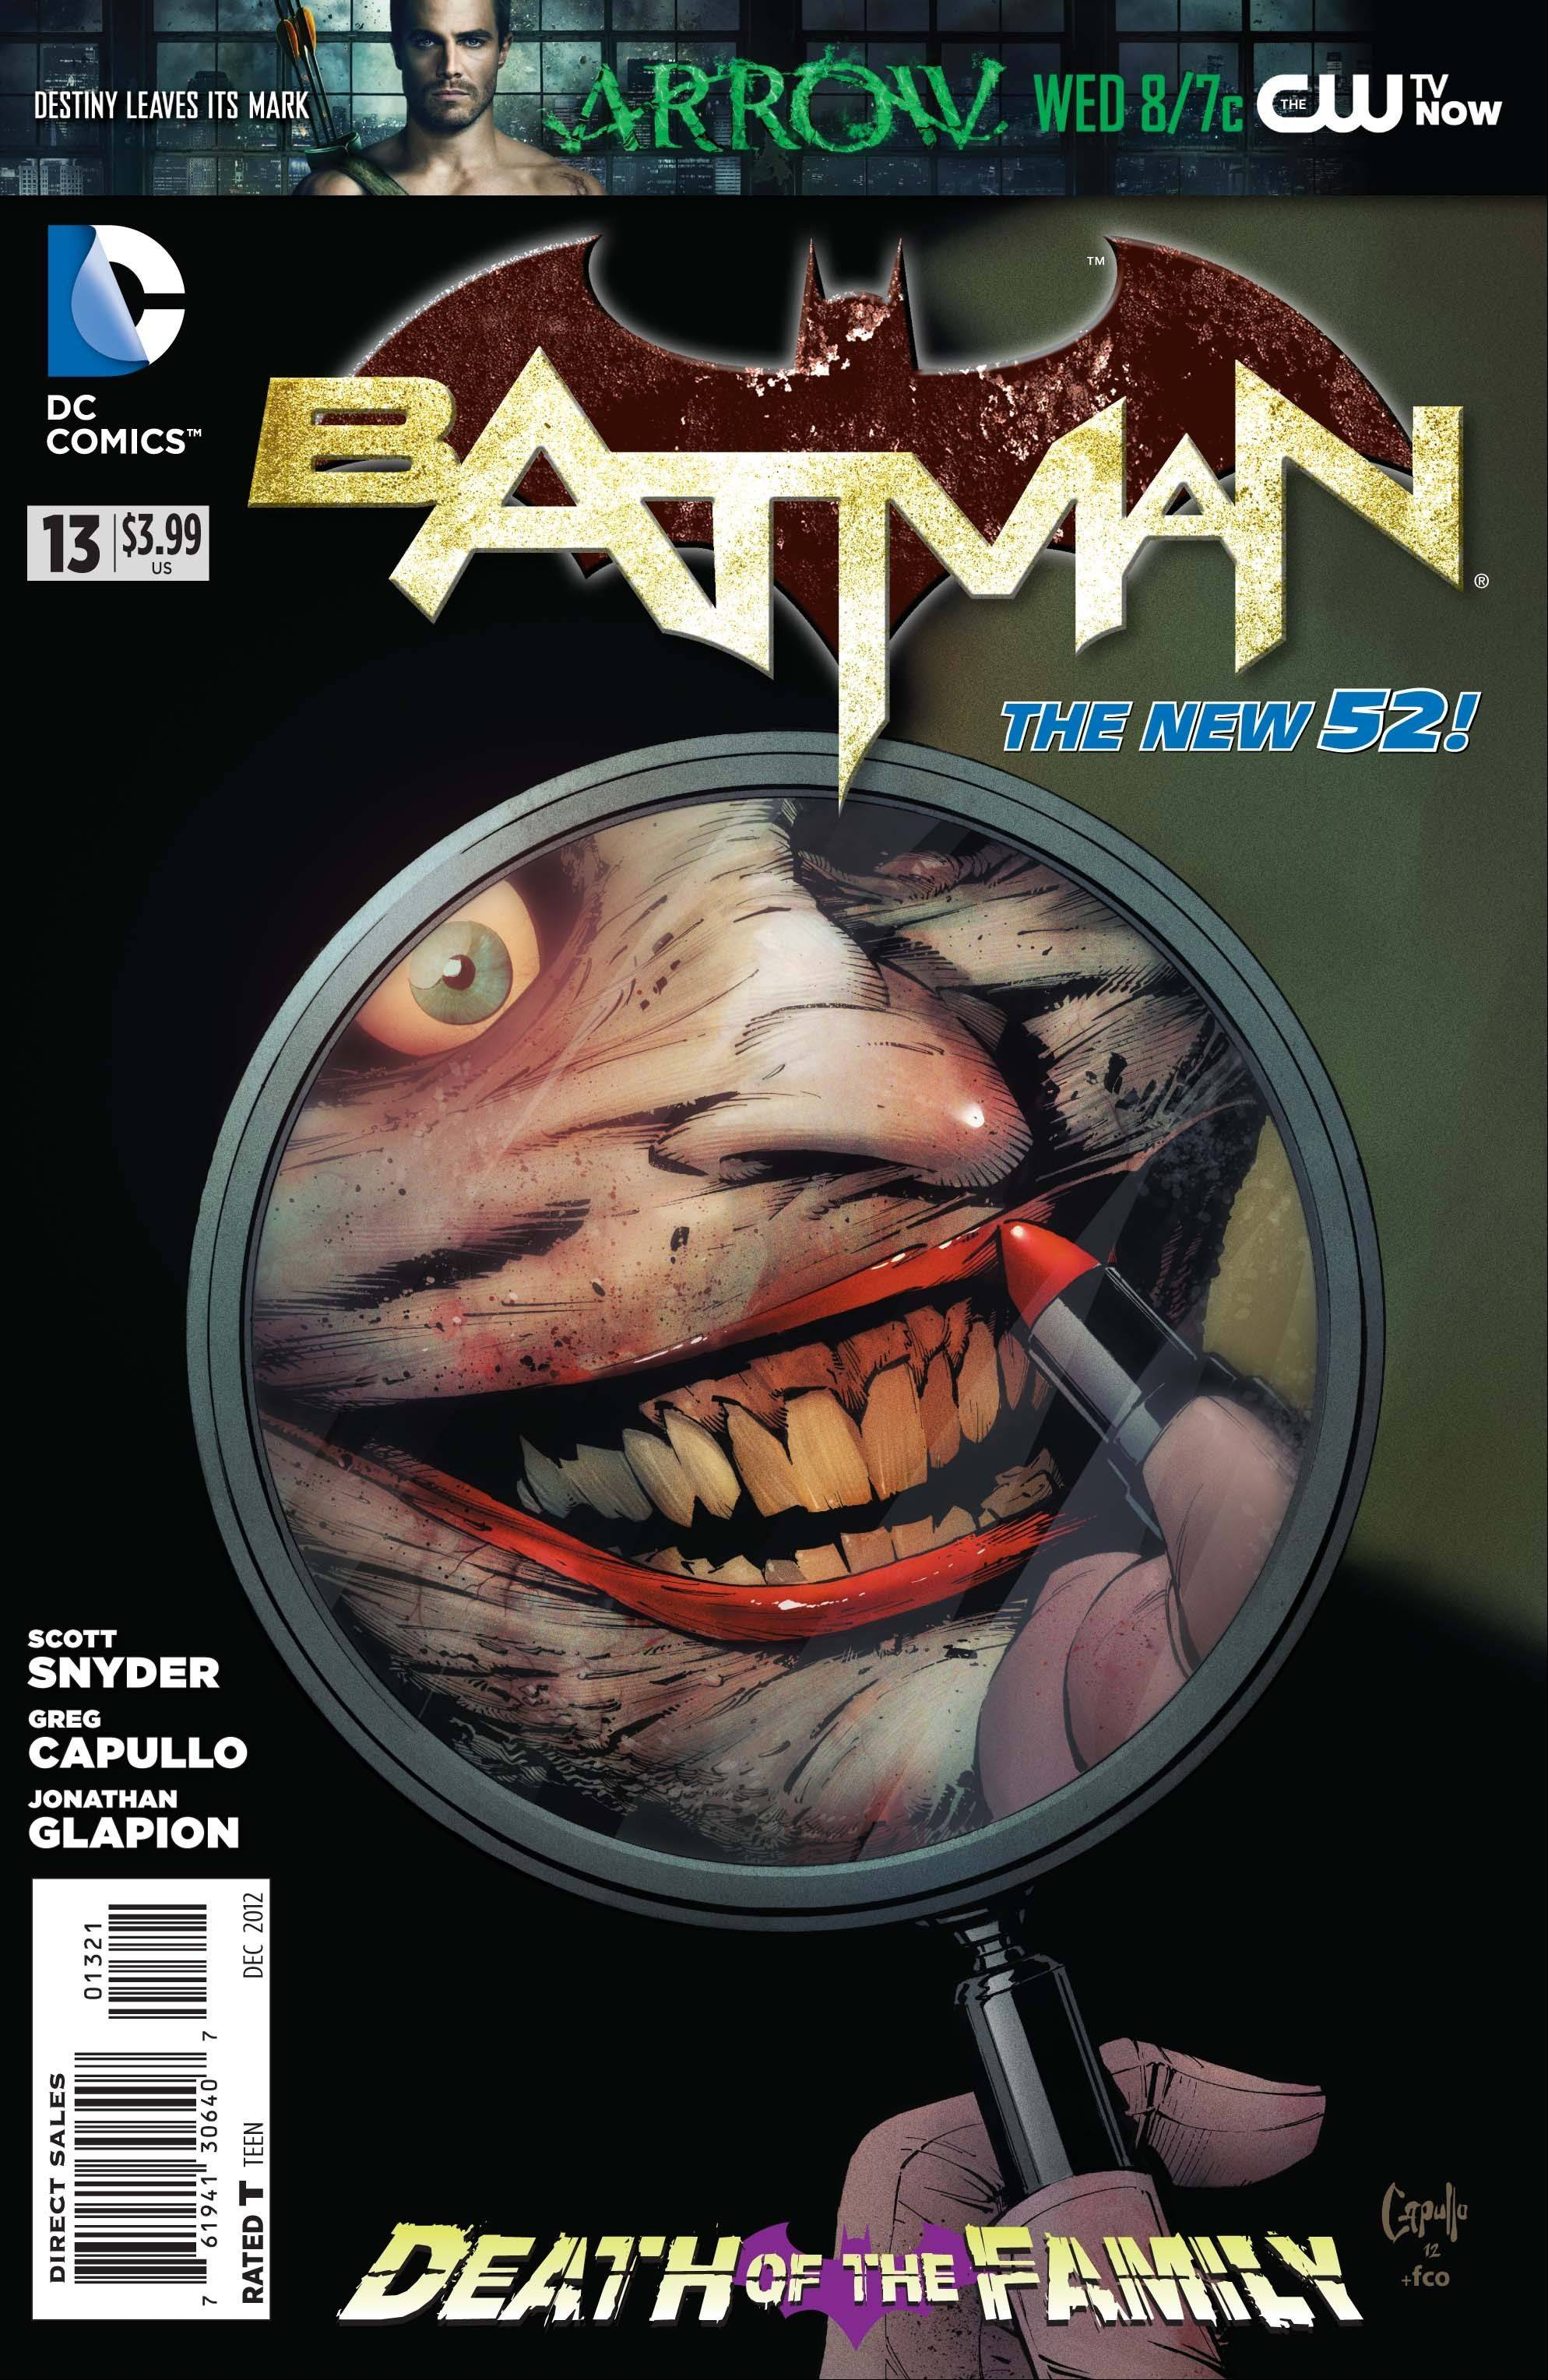 This comic book cover image released by DC Entertainment shows the Joker on the cover of �Batman� No. 13, released this week. The story, �Death of the Family,� will cross numerous issues from now through February.